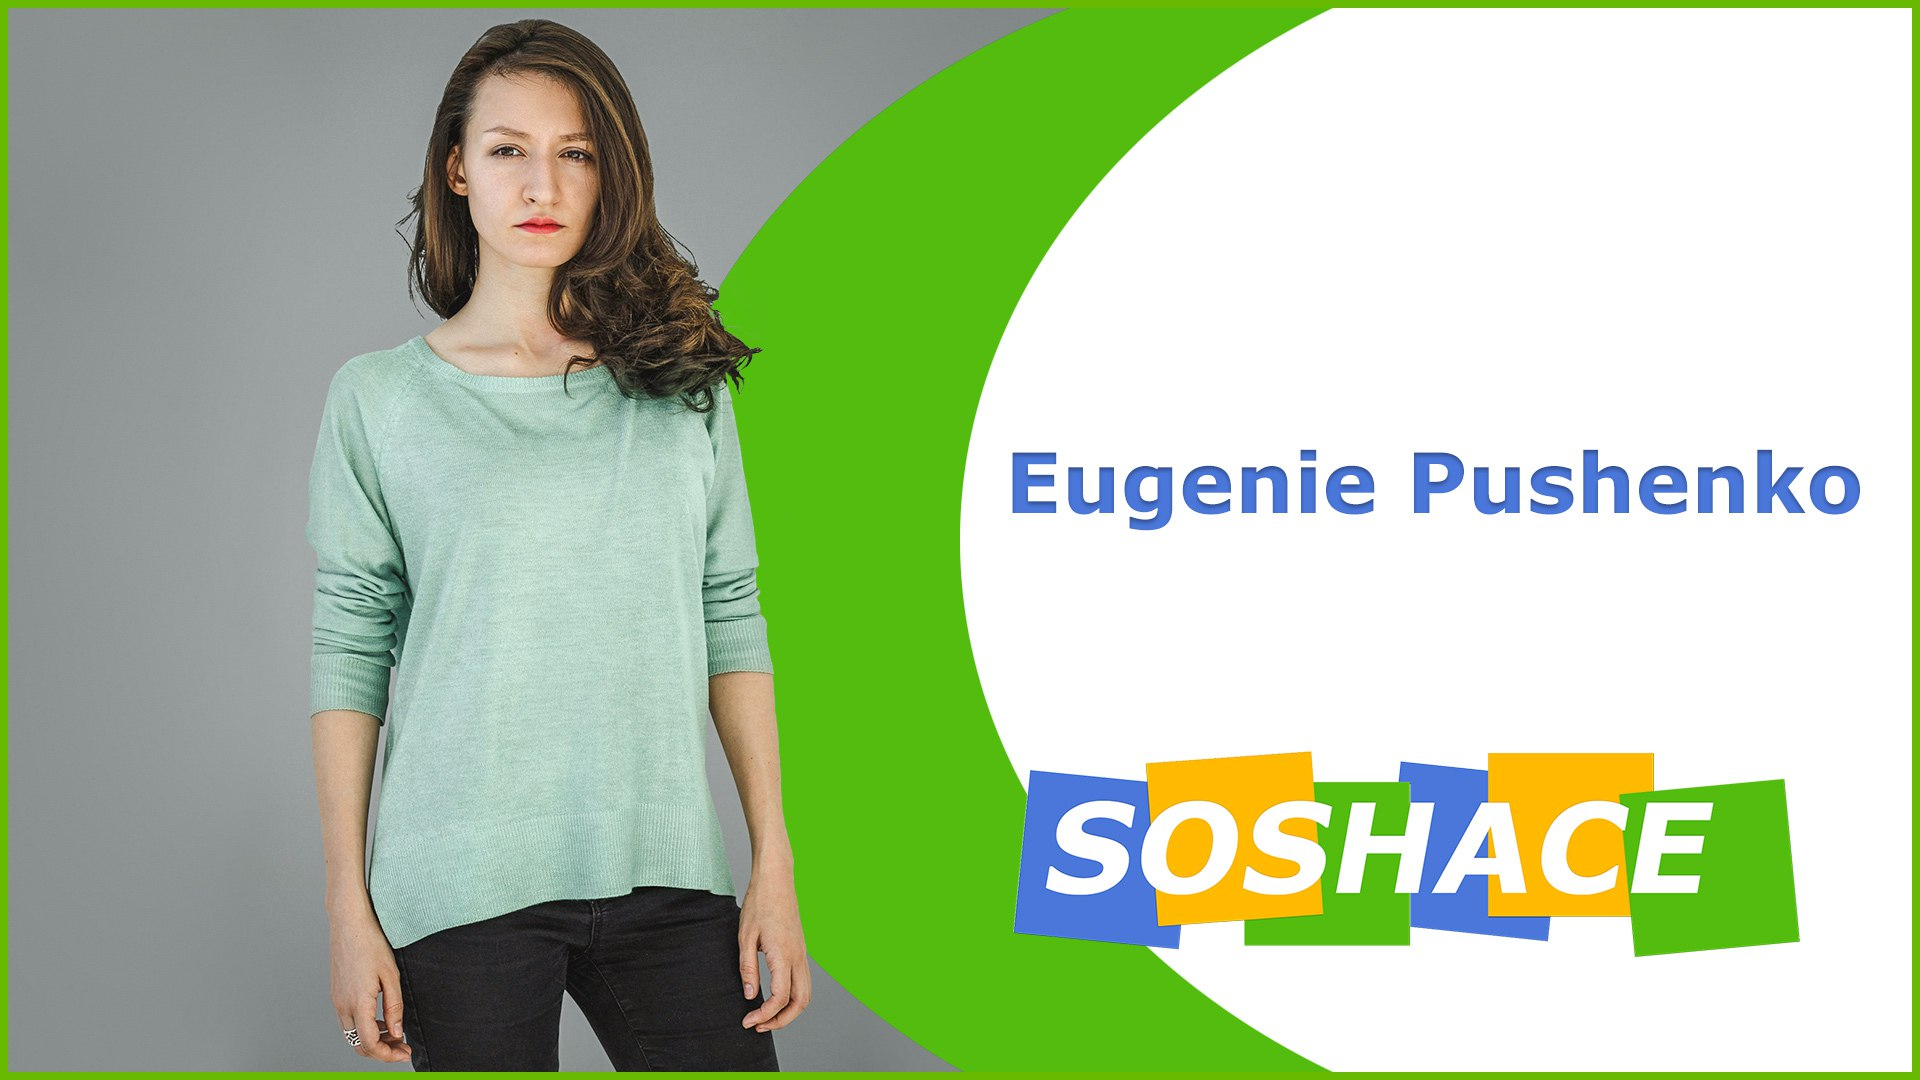 Interview with Eugenie